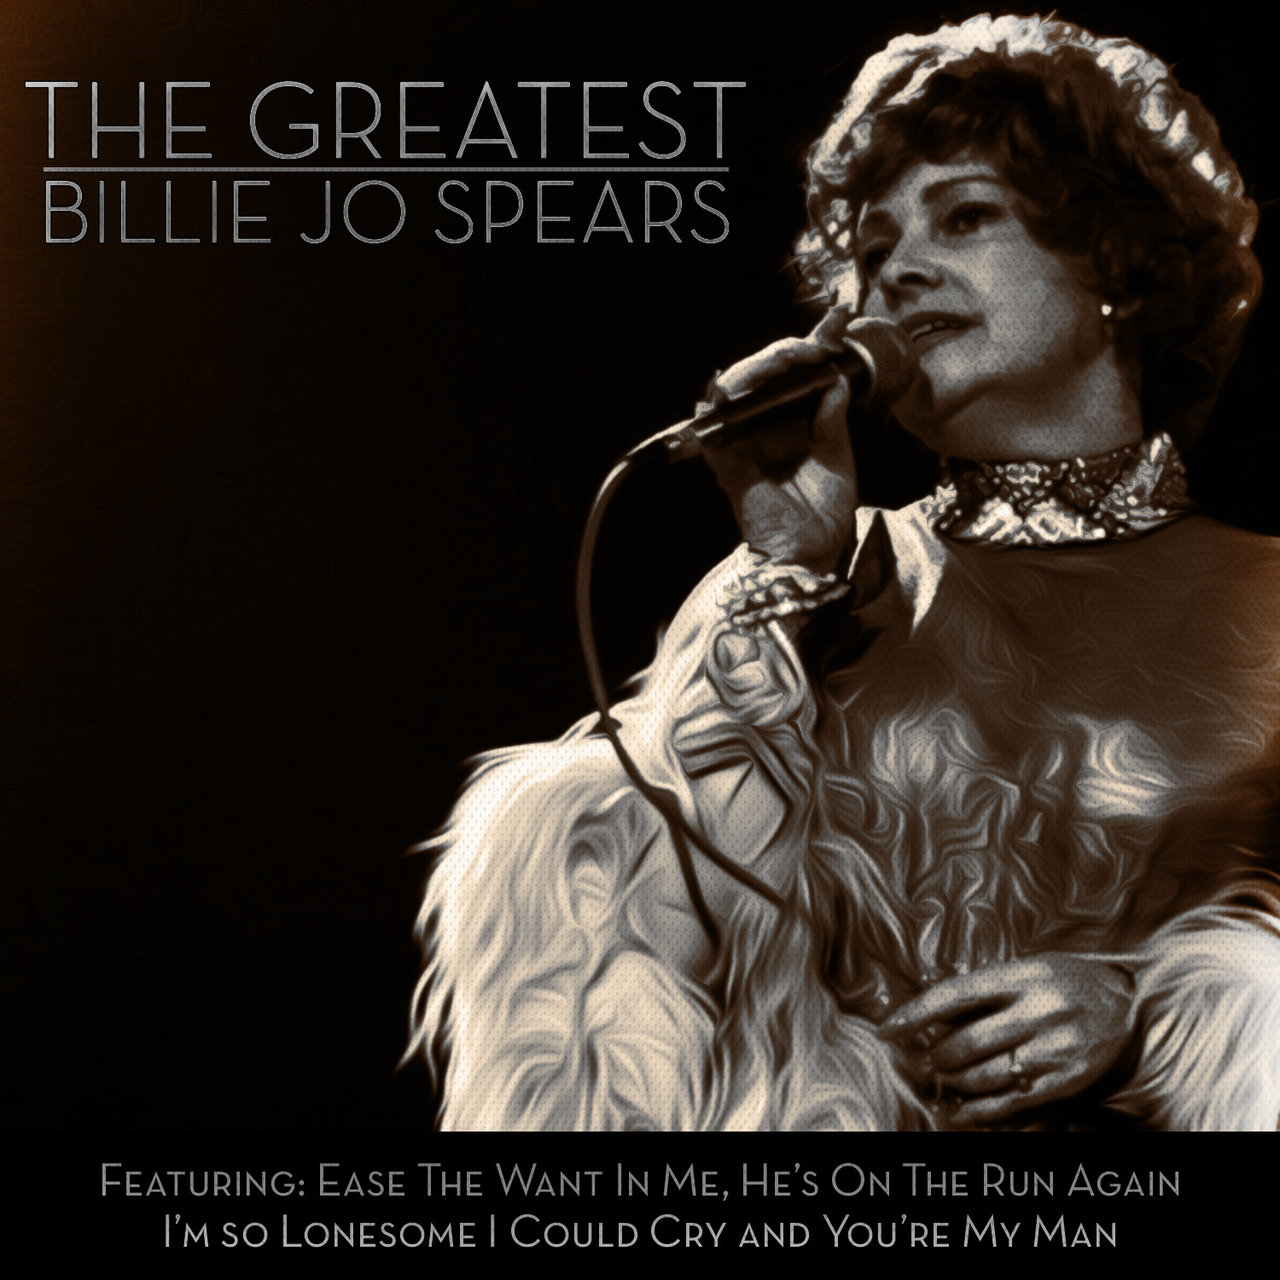 The Greatest Billie Jo Spears